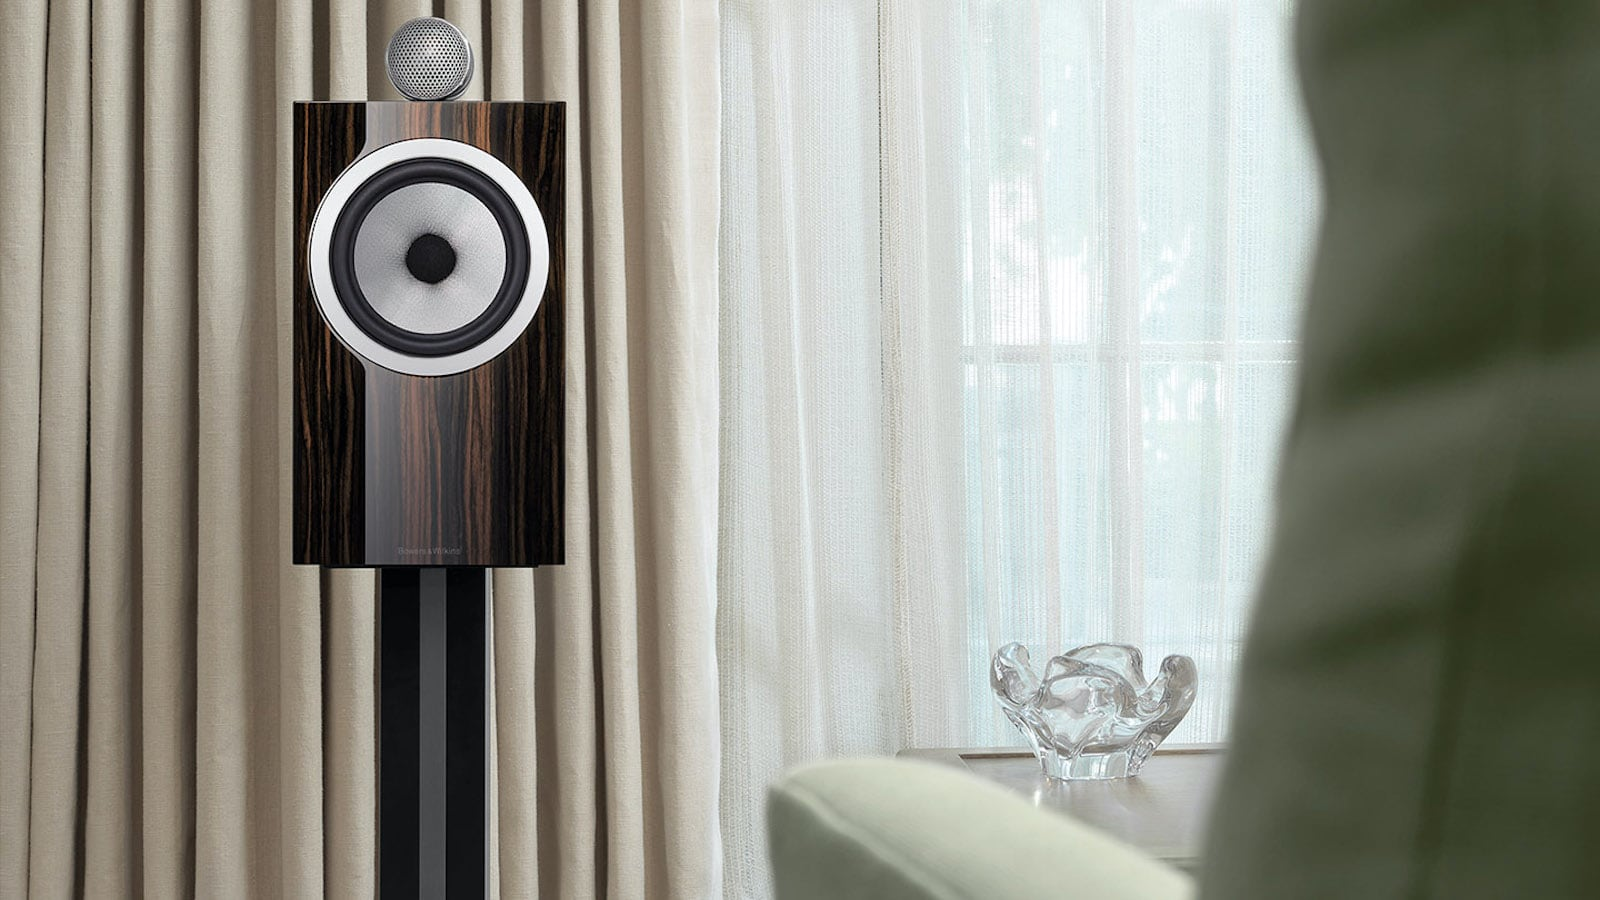 Bowers & Wilkins 705 Signature Standmount Speaker sounds just as good as it looks